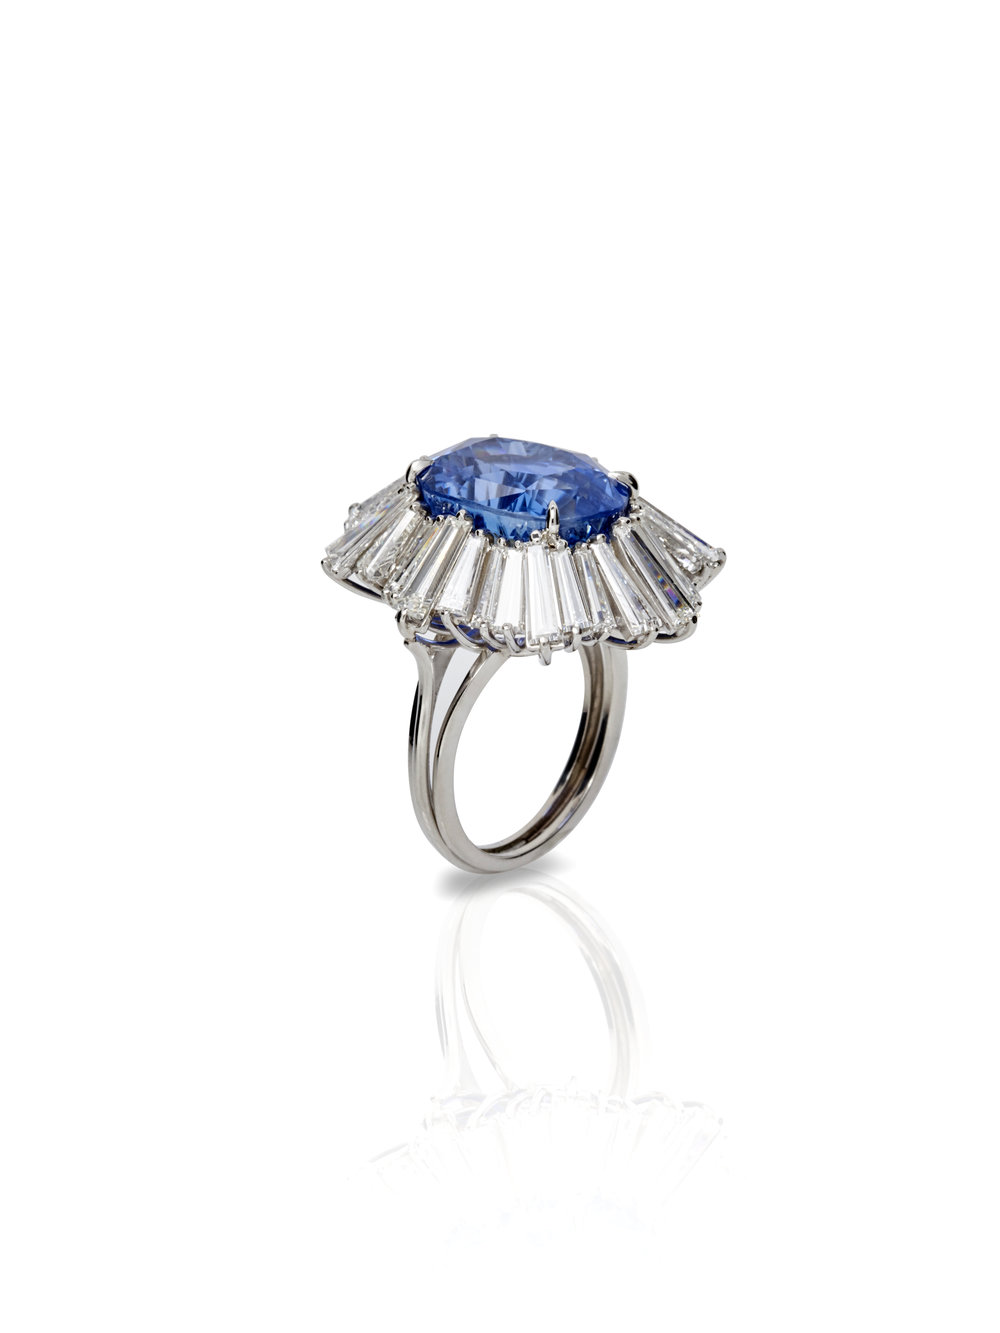 EYDIS SAPPHIRE RING   PLATINUM RING 8 CT OF DIAMONDS 19.75 CT OF SAPPHIRE      Contact for inquiry